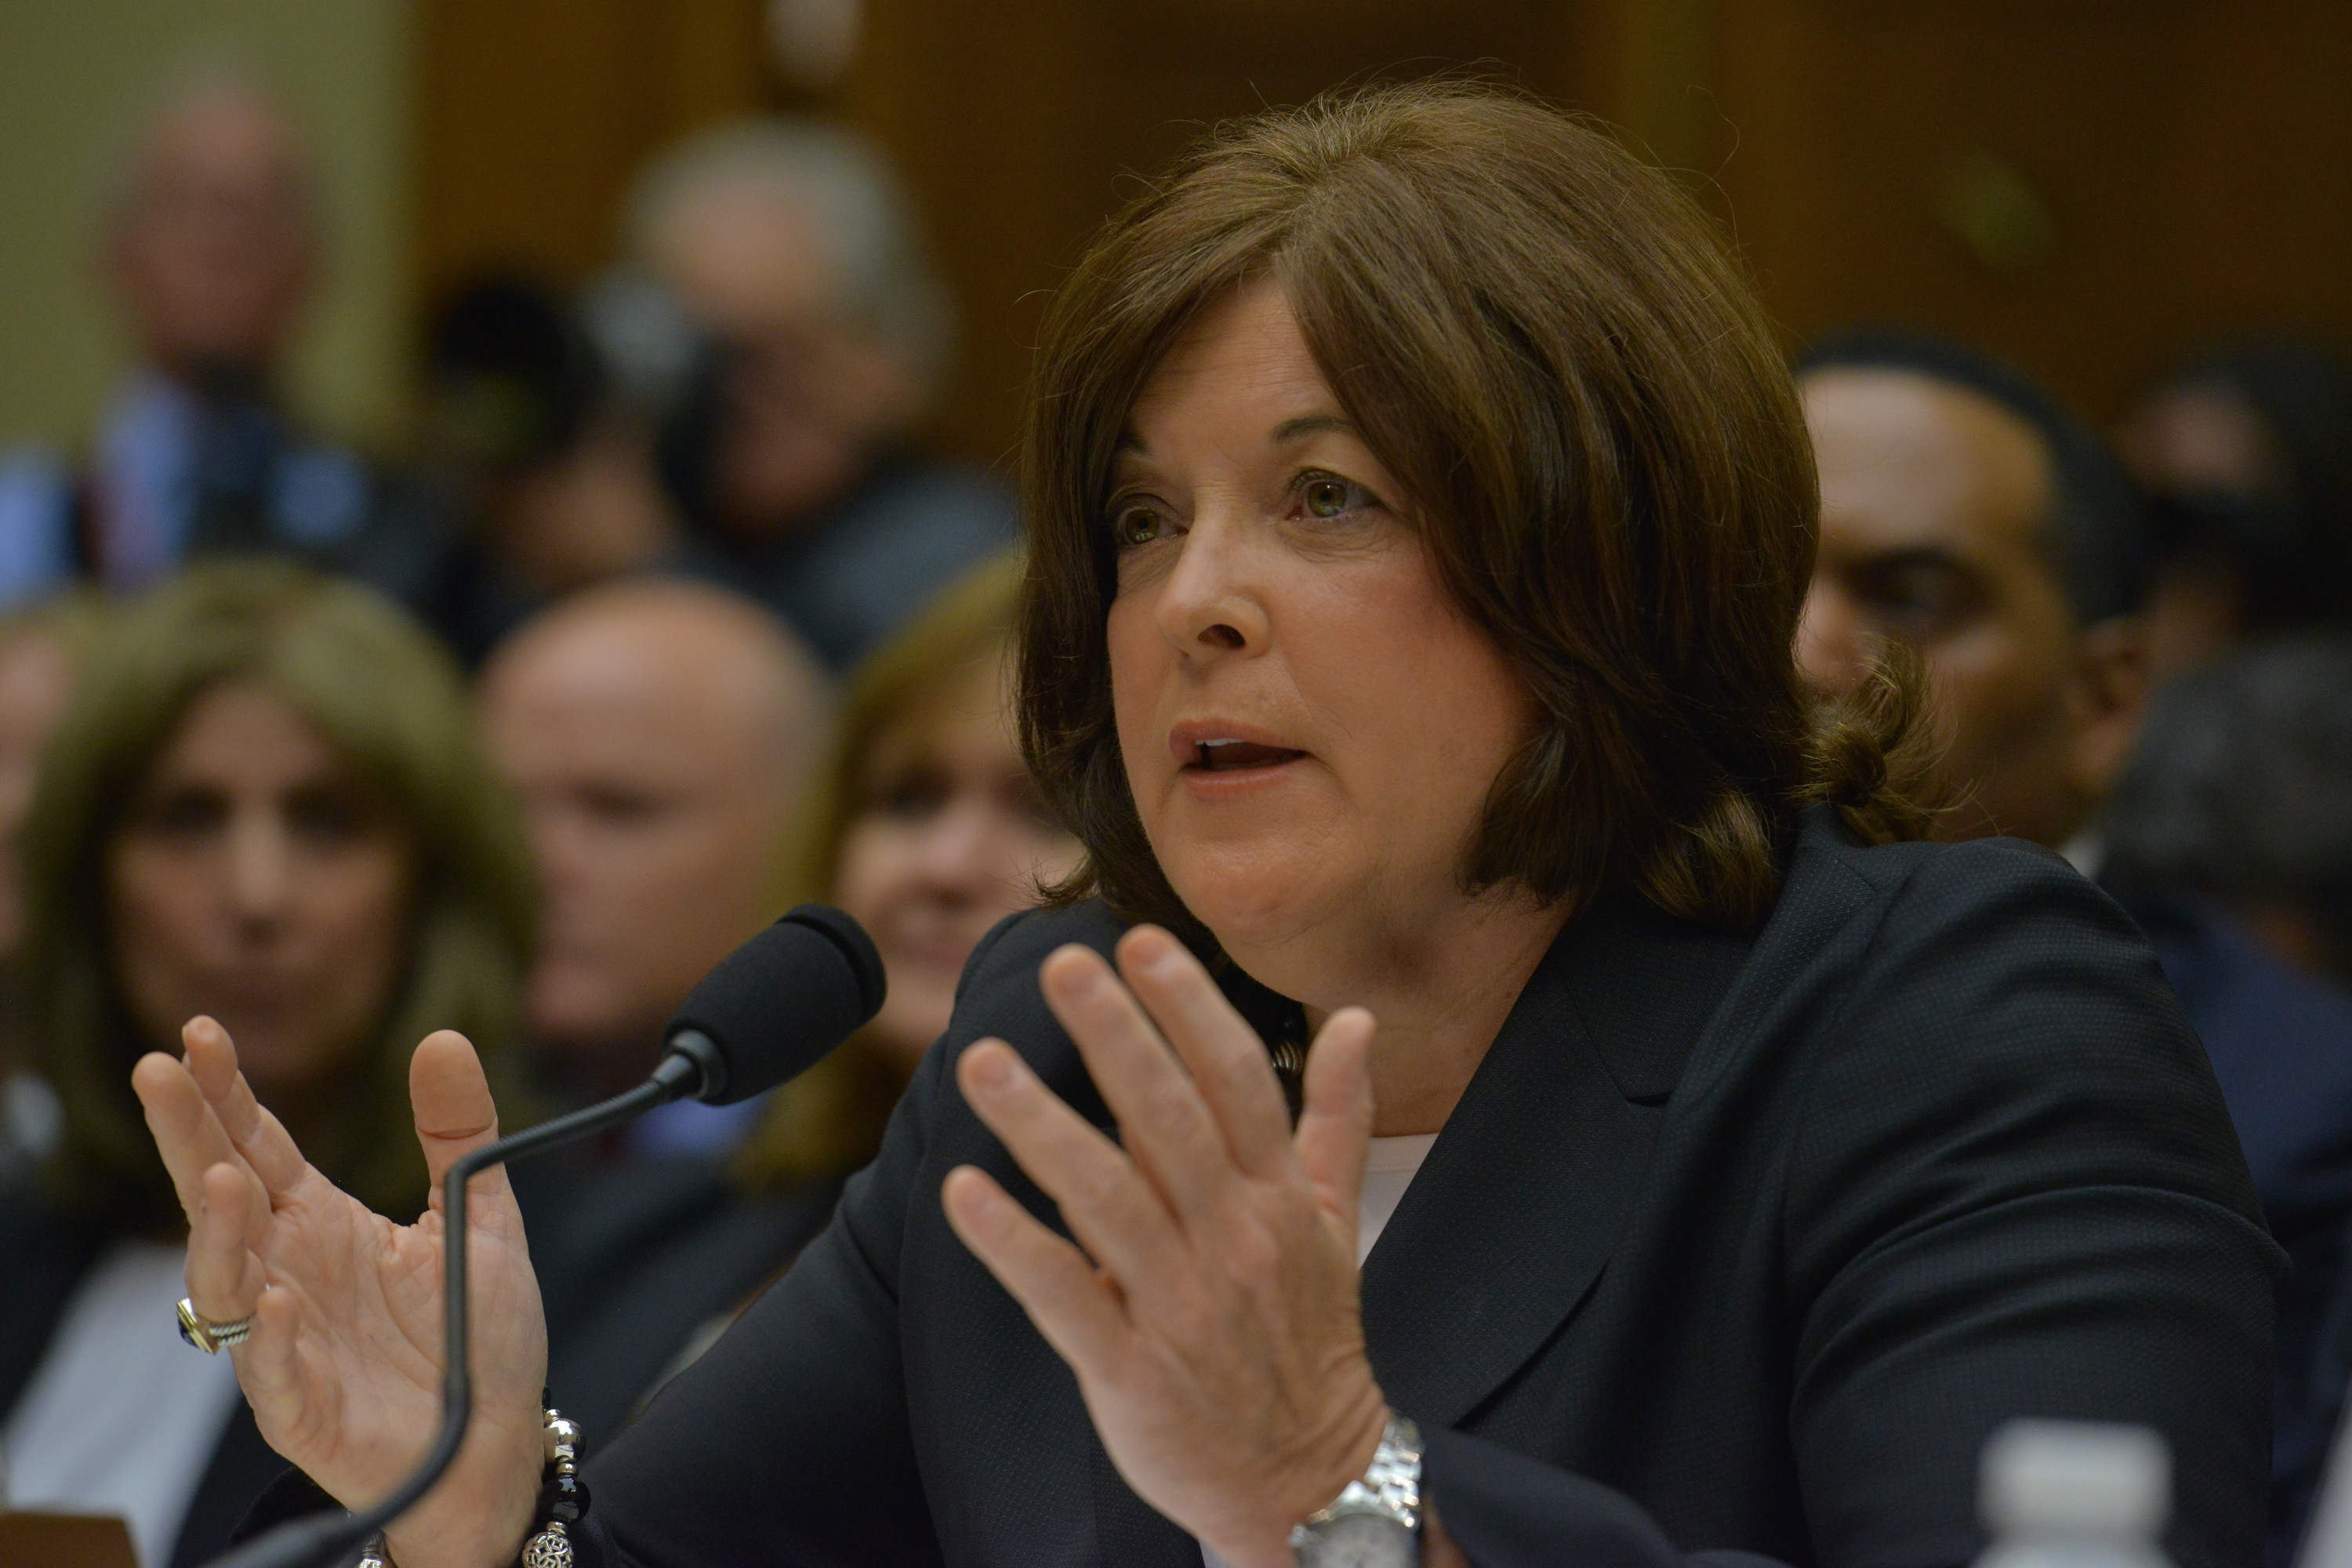 Julia Pierson, director of the U.S. Secret Service, is grilled by members of congress during a Hearing by the House Oversight Committee on the flaws and errors by the U.S. Secret Service in protecting the White House held at the Rayburn House Office Building on Tuesday, September 30 , 2014, in Washington, DC.